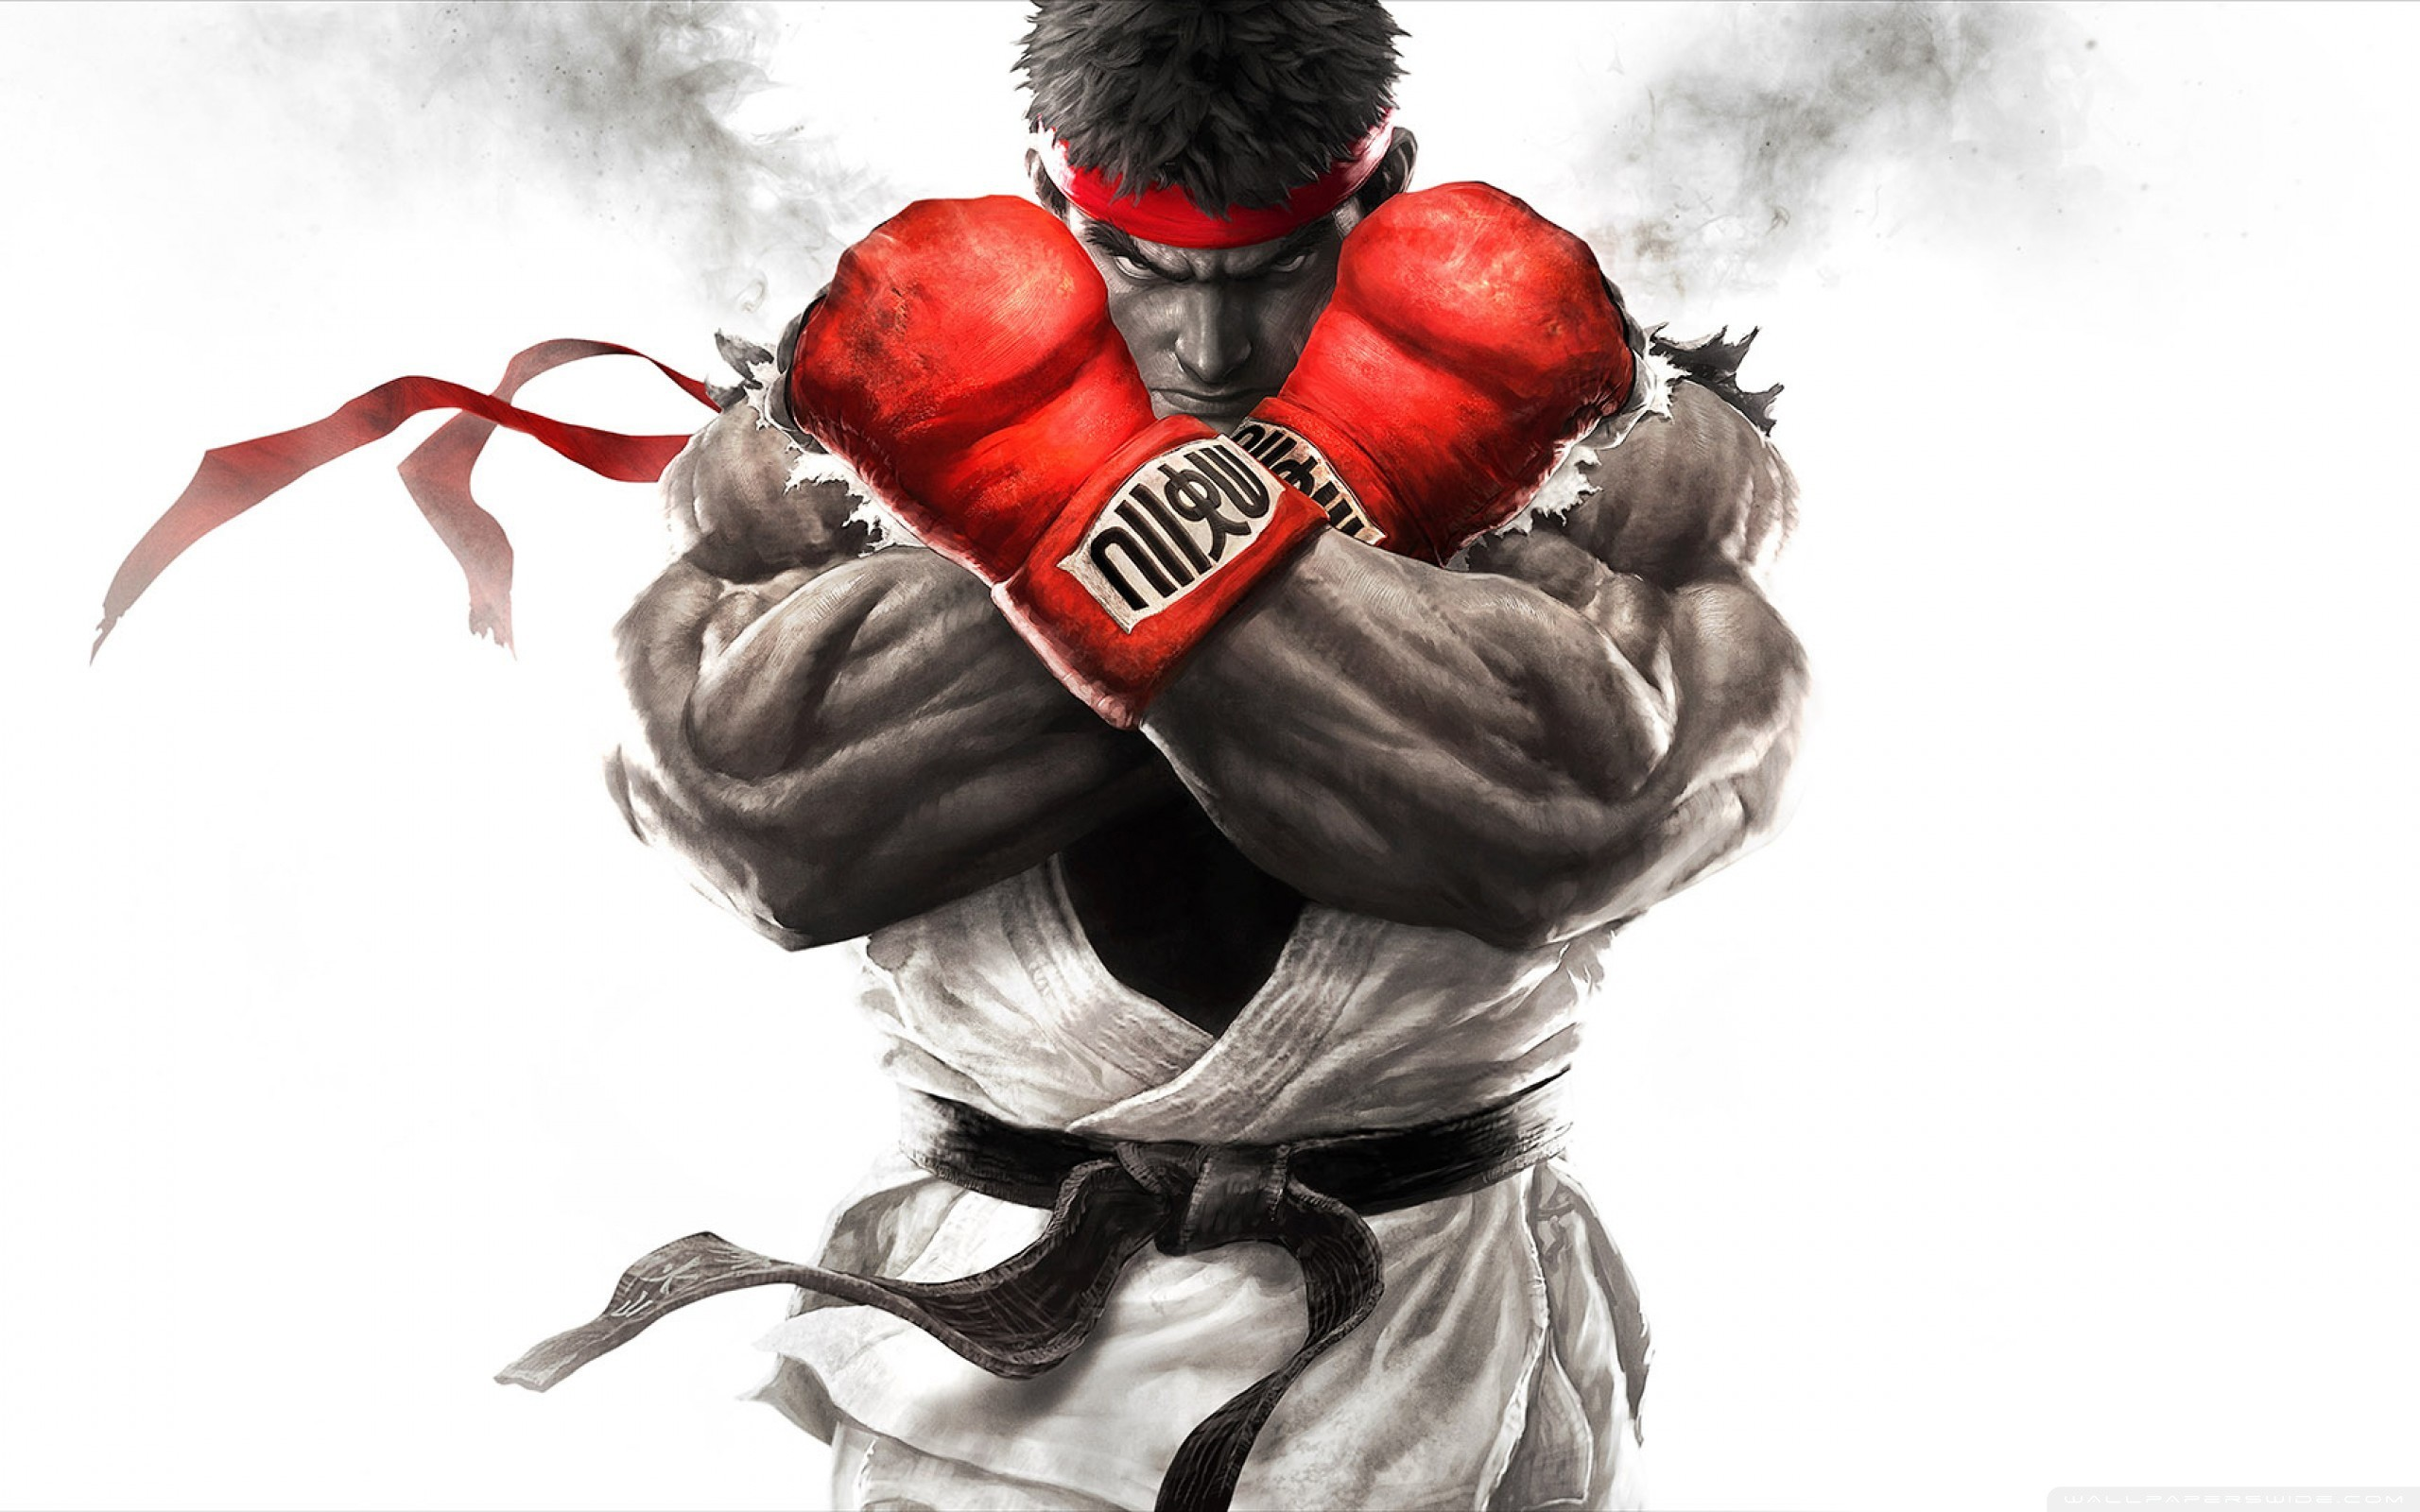 street fighter hd wallpaper 68 images